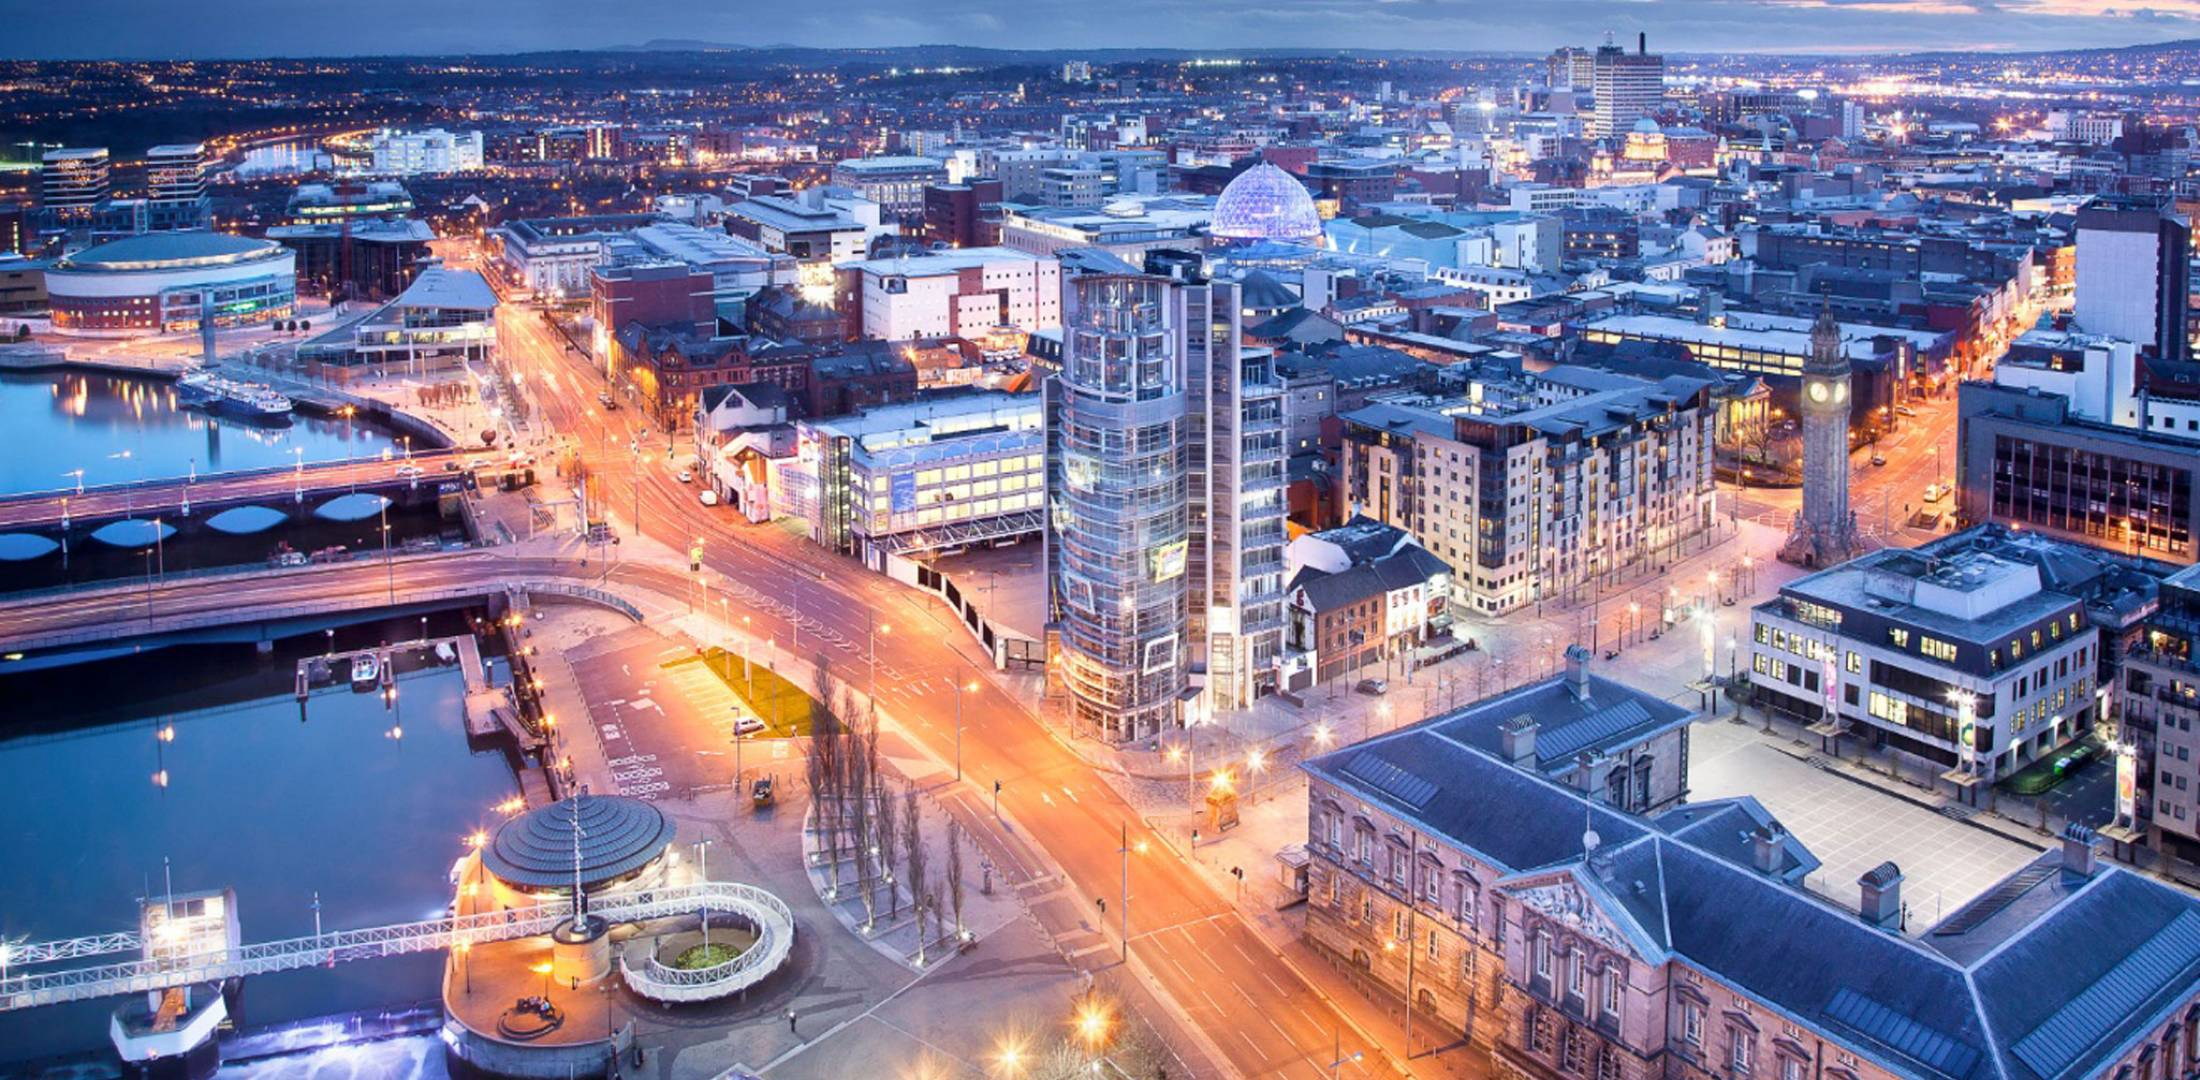 aerial view of Belfast